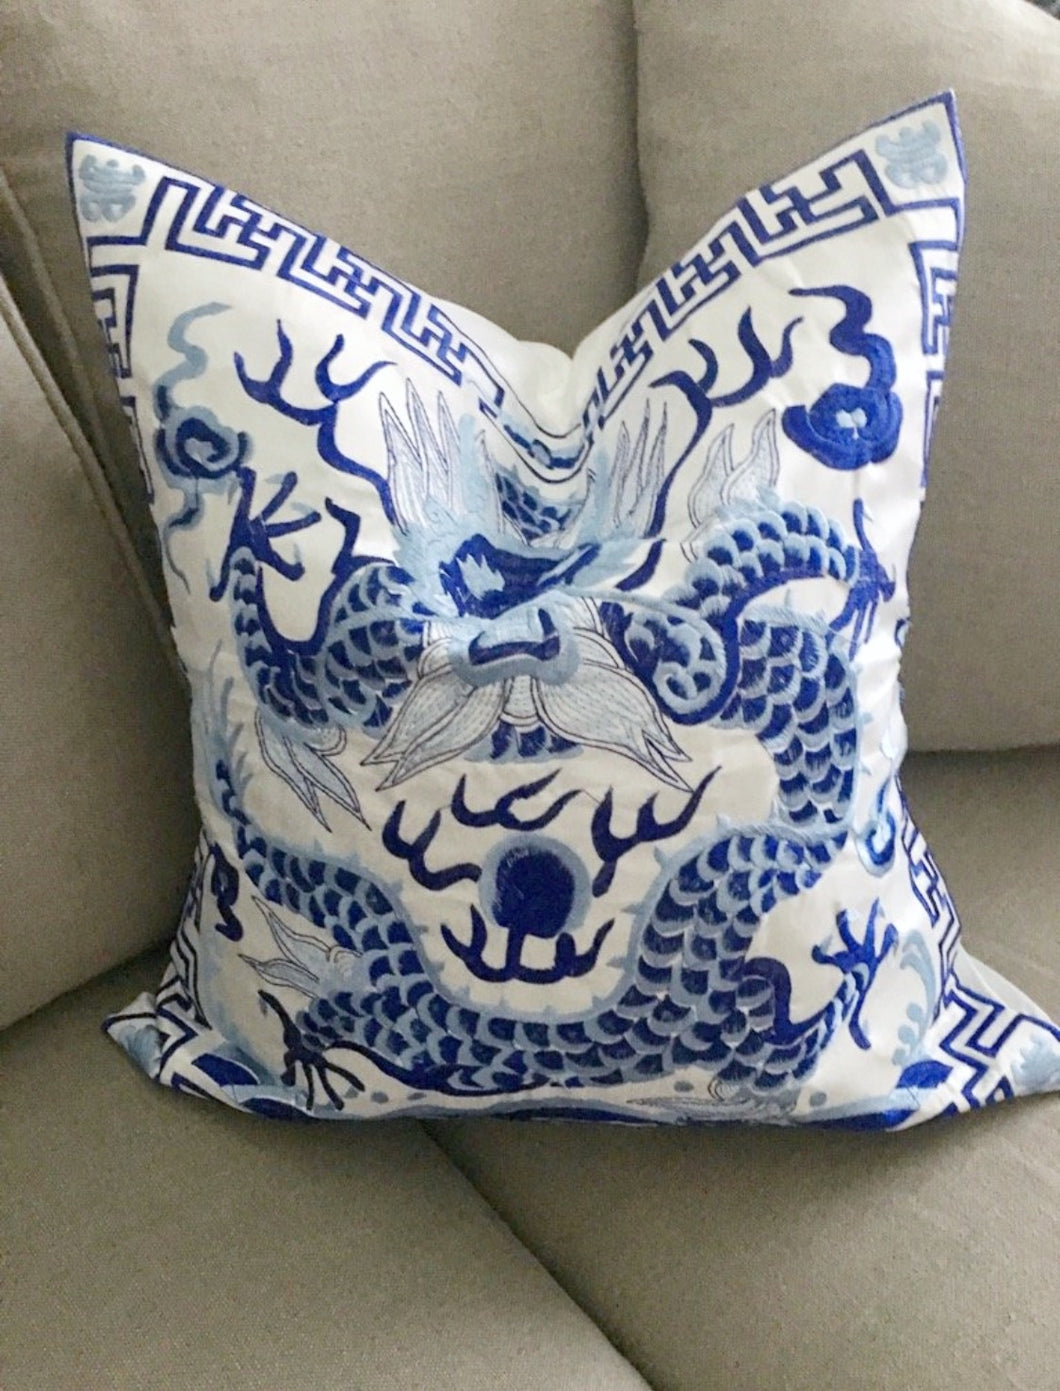 "Embroidered Blue and White Chinoiserie Dragon Pillow Covers - Set of Two 18x18"" - Ginger jar"